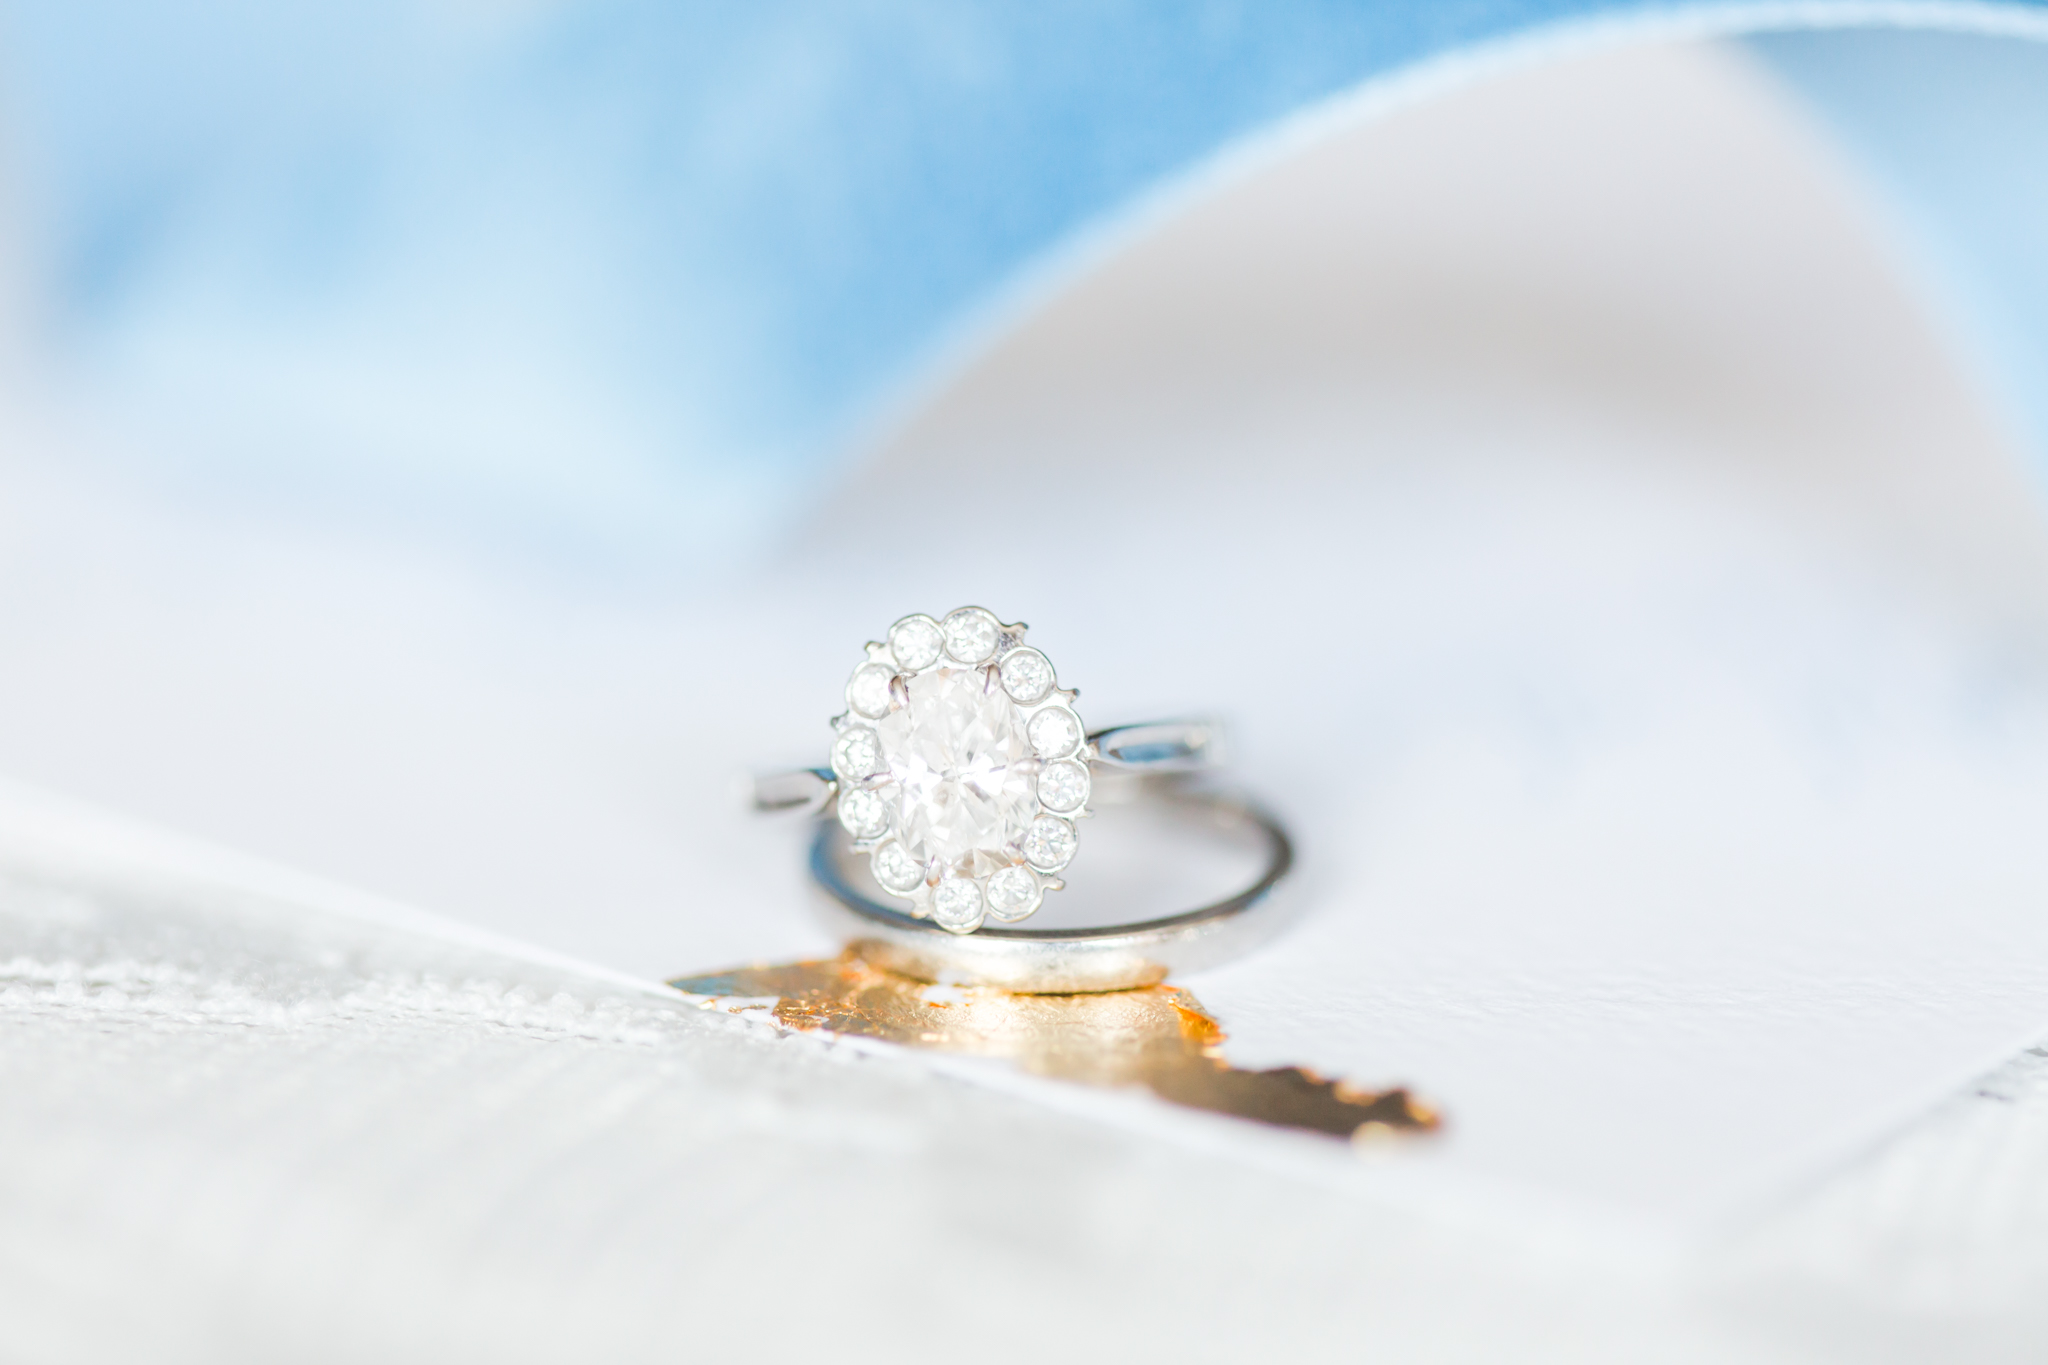 Oval platinum engagement ring with a halo and a plan platinum band - Pearl Weddings & Events